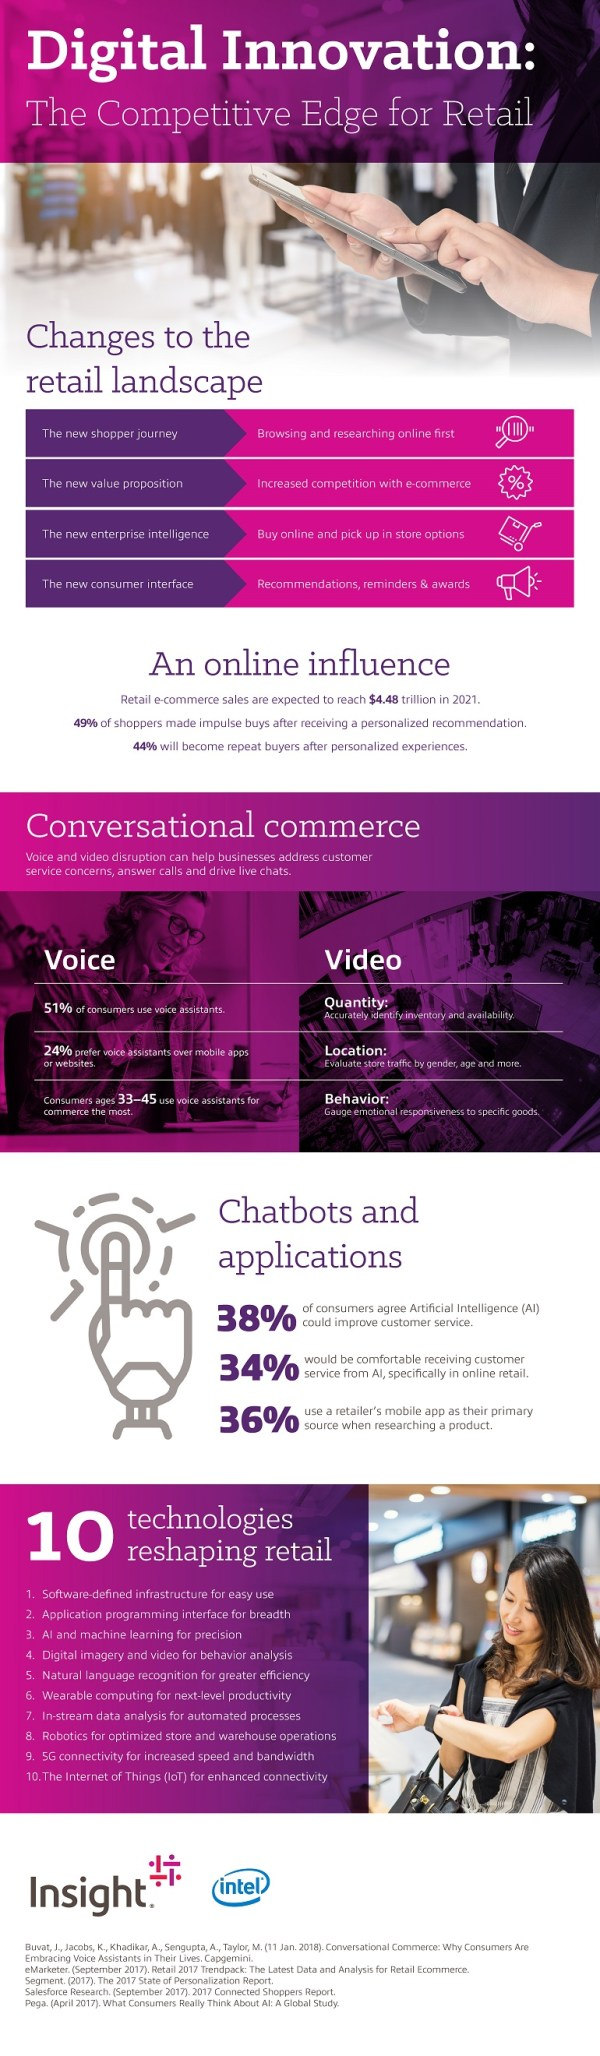 digital-innovation-the-competitive-edge-for-retail